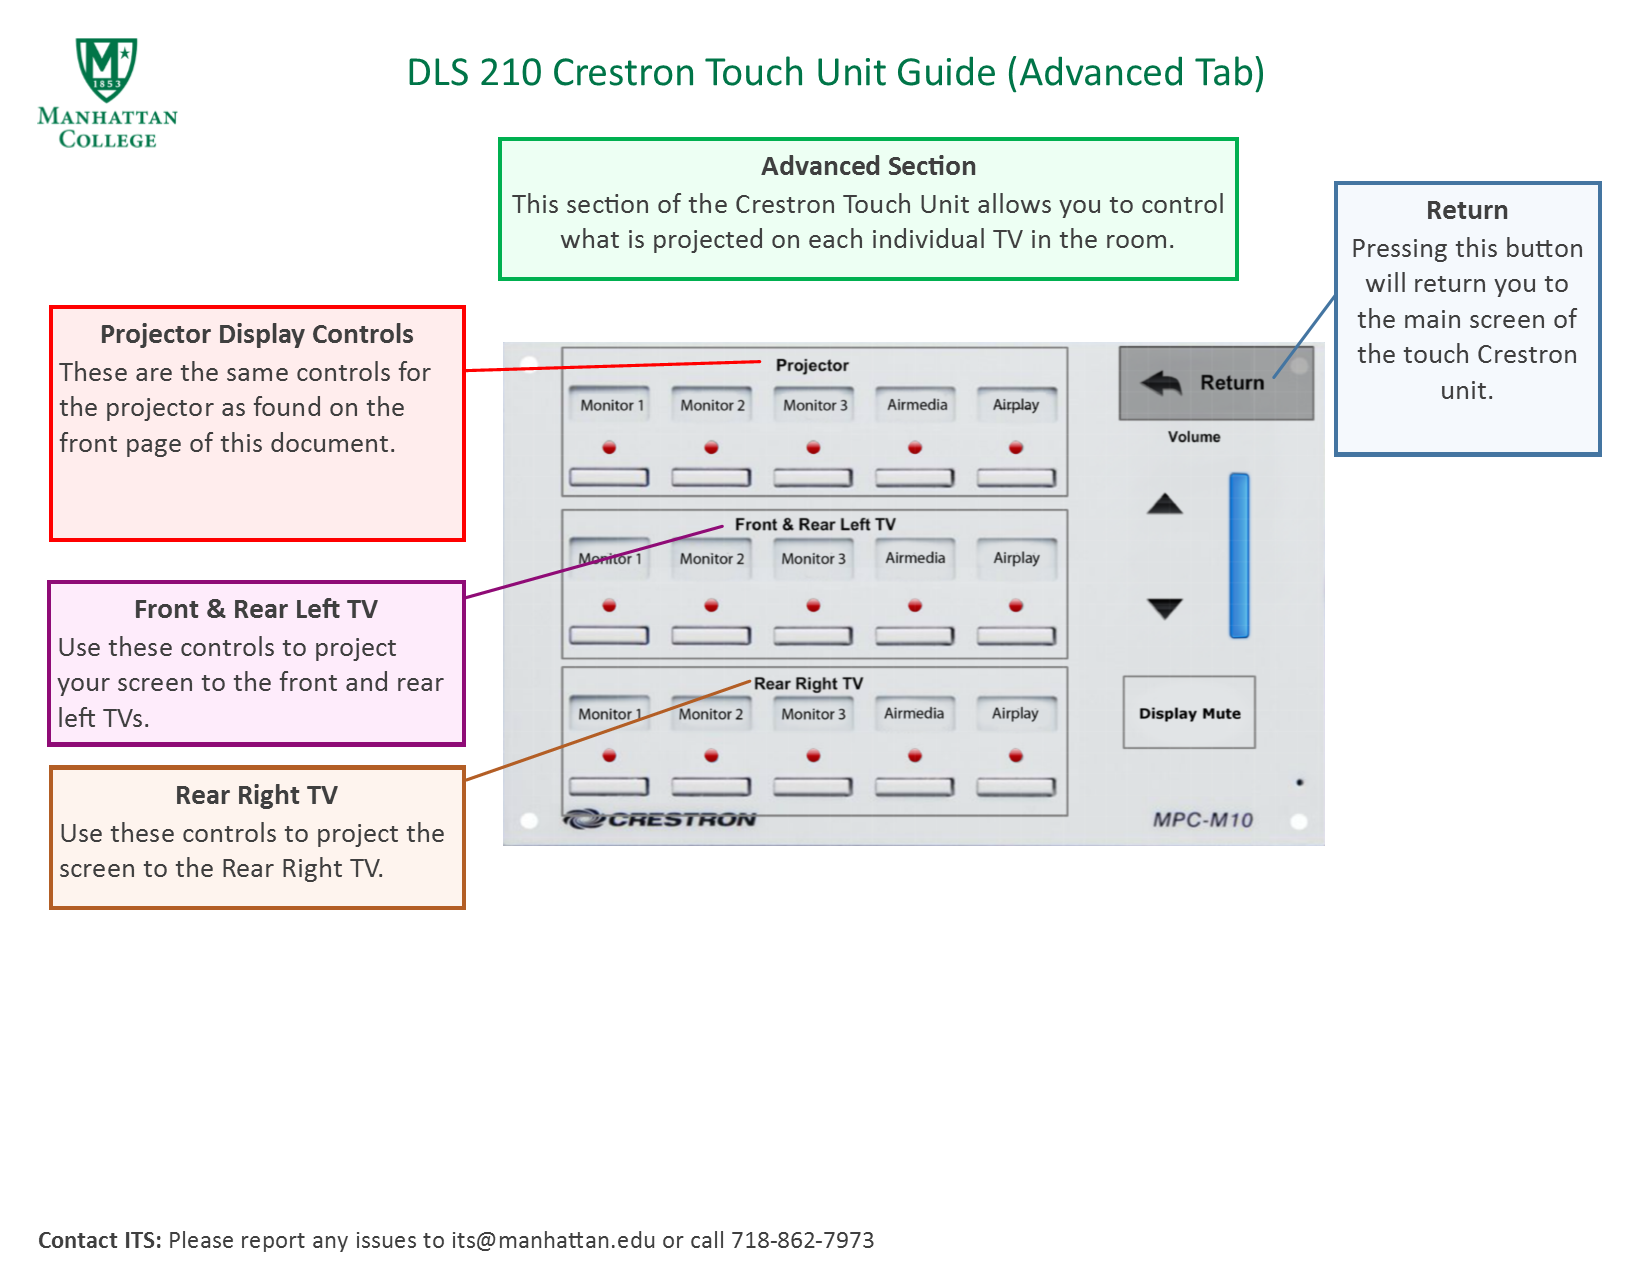 image depicting advanced section of touch crestron podium guides